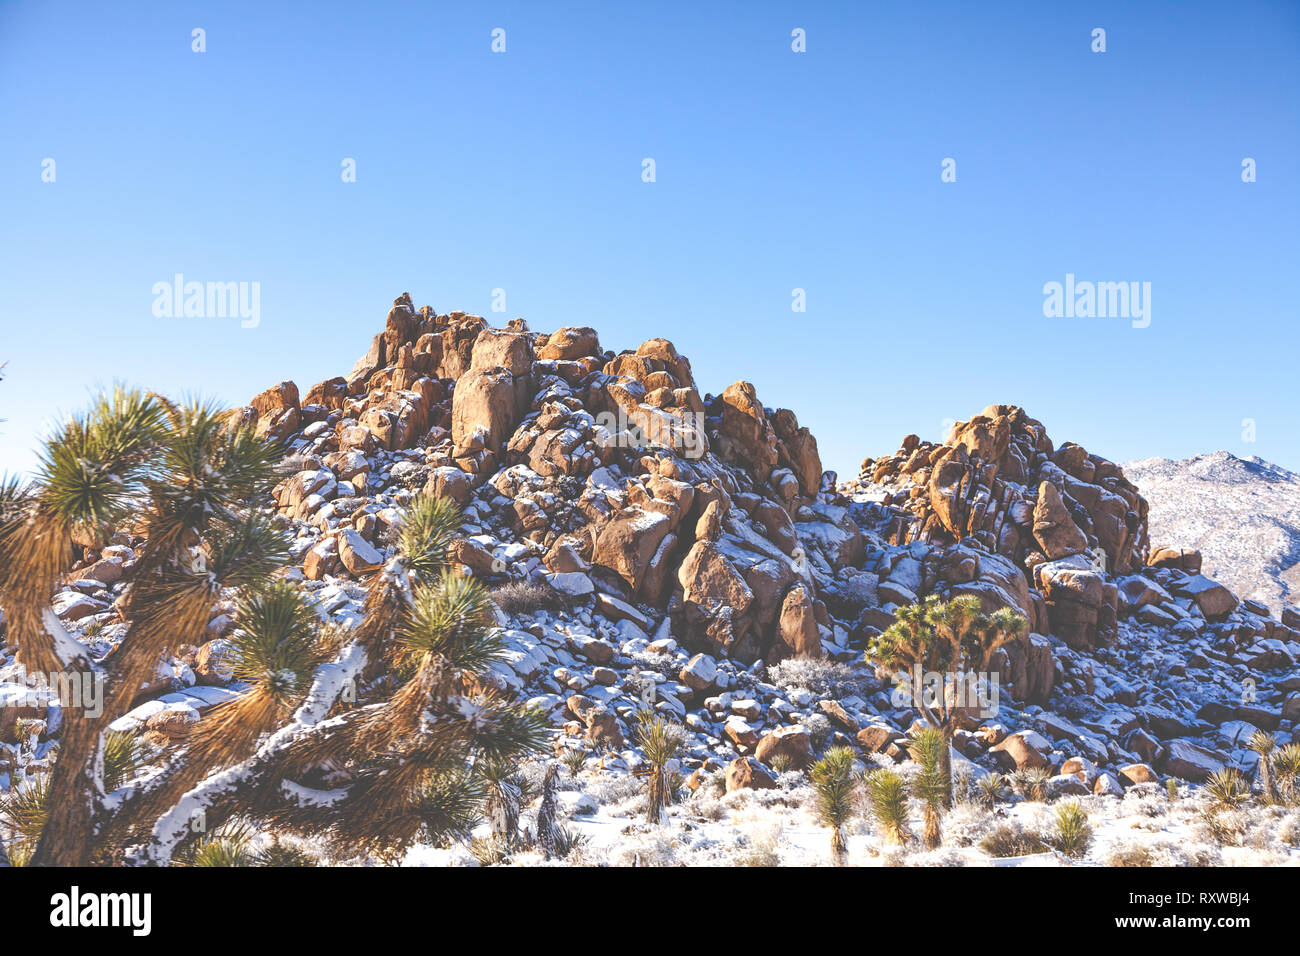 Snow Covered Boulders And Plants In The Desert Landscape Of